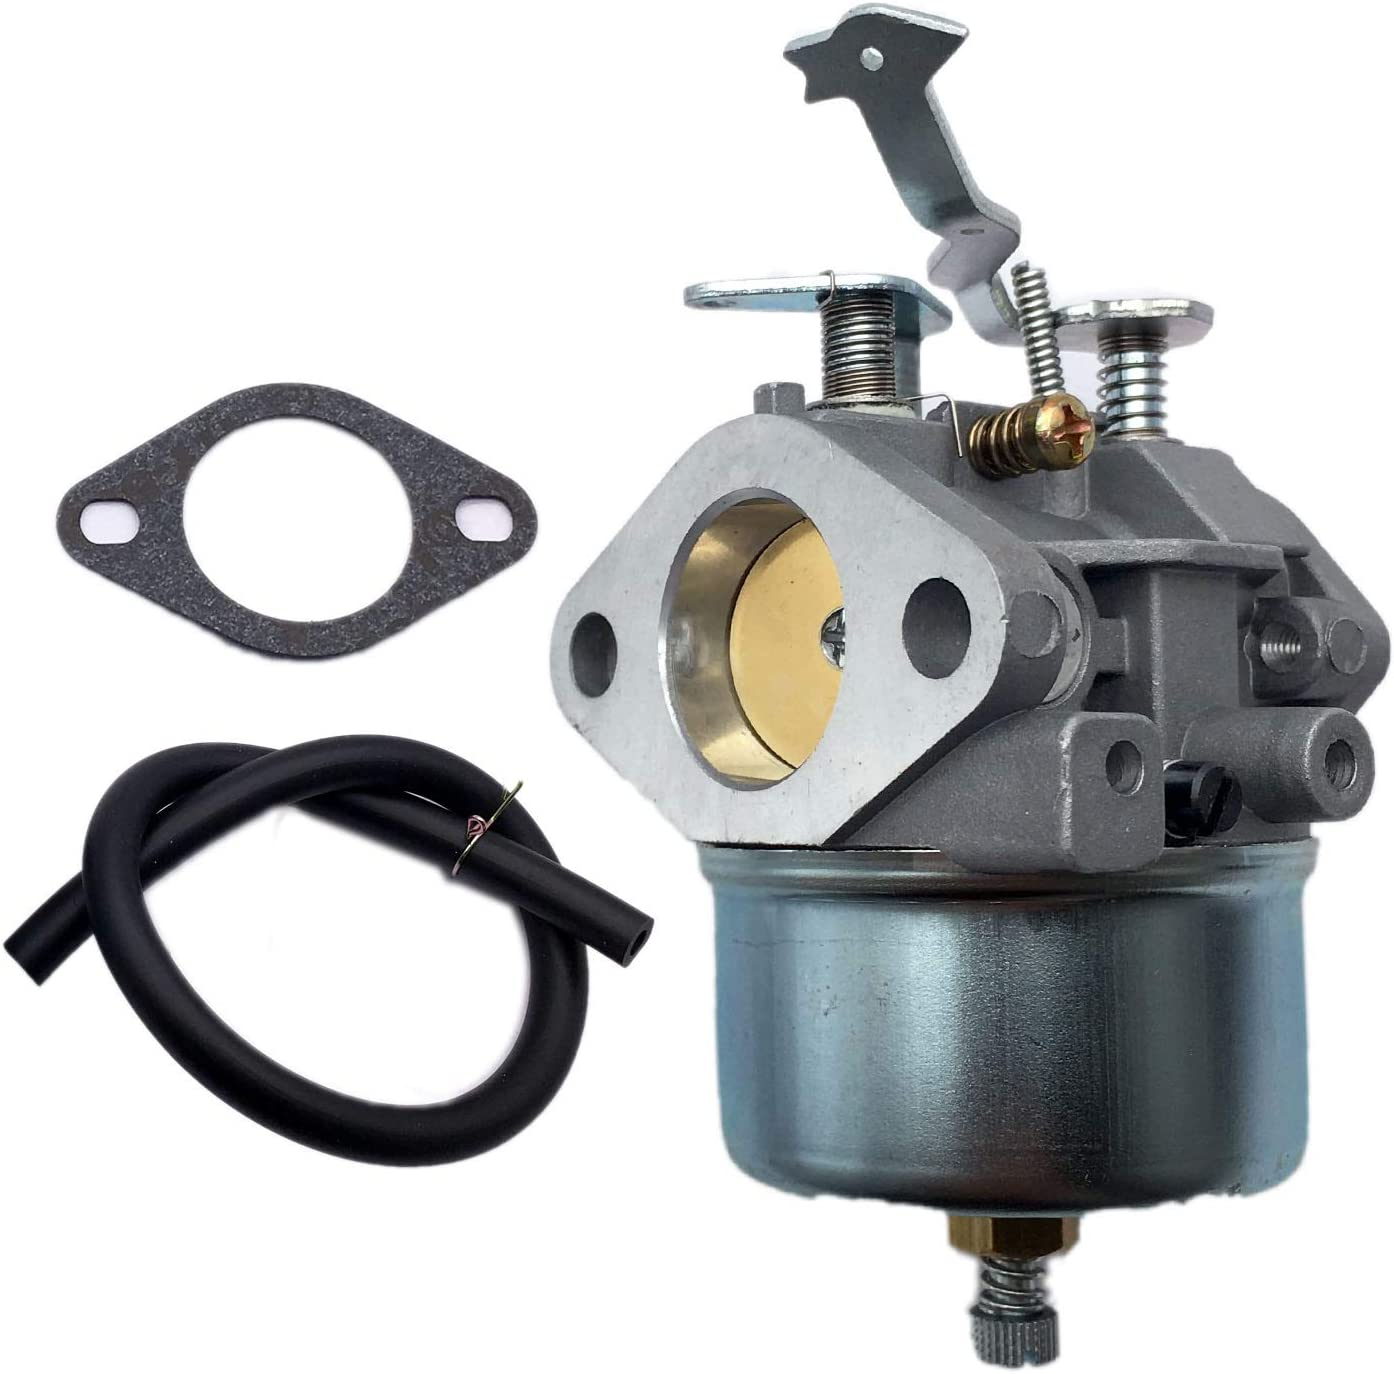 Max 57% OFF Aokus 632424 Carburetor with Gasket Tecumseh for 632 Philadelphia Mall Replacement